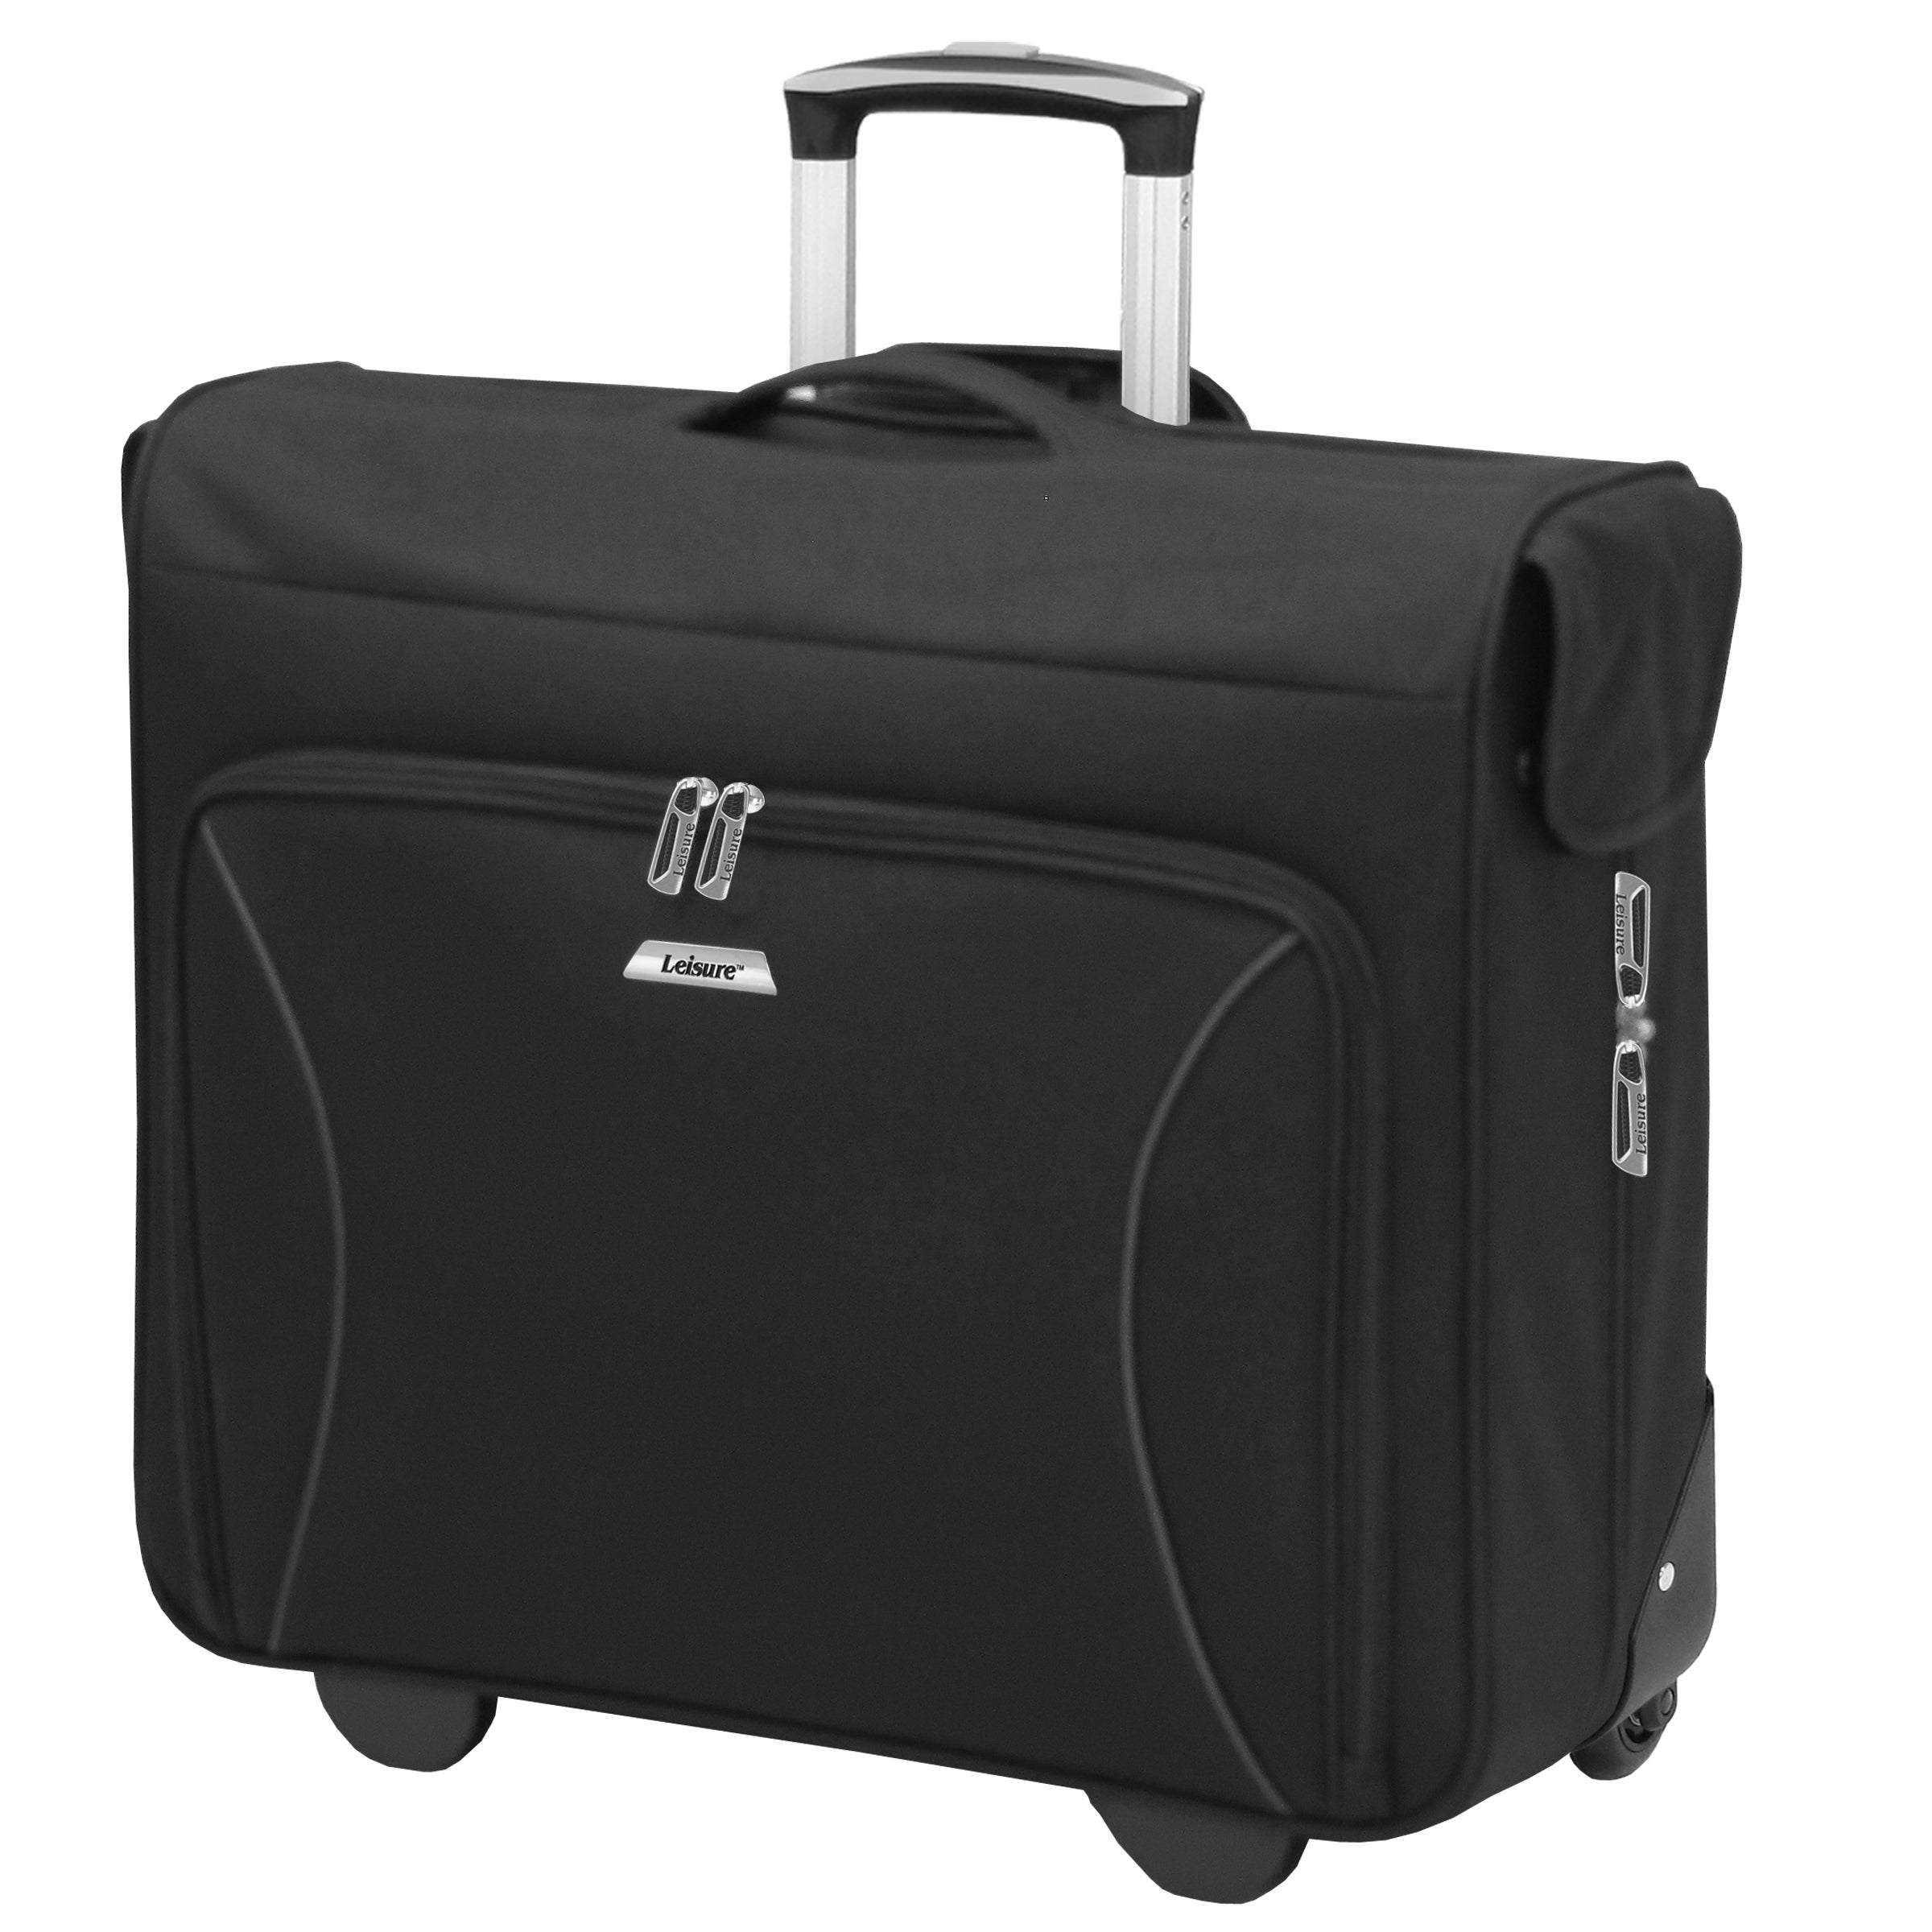 Mens Suit Travel Garment Bag  add2b04b3bddc